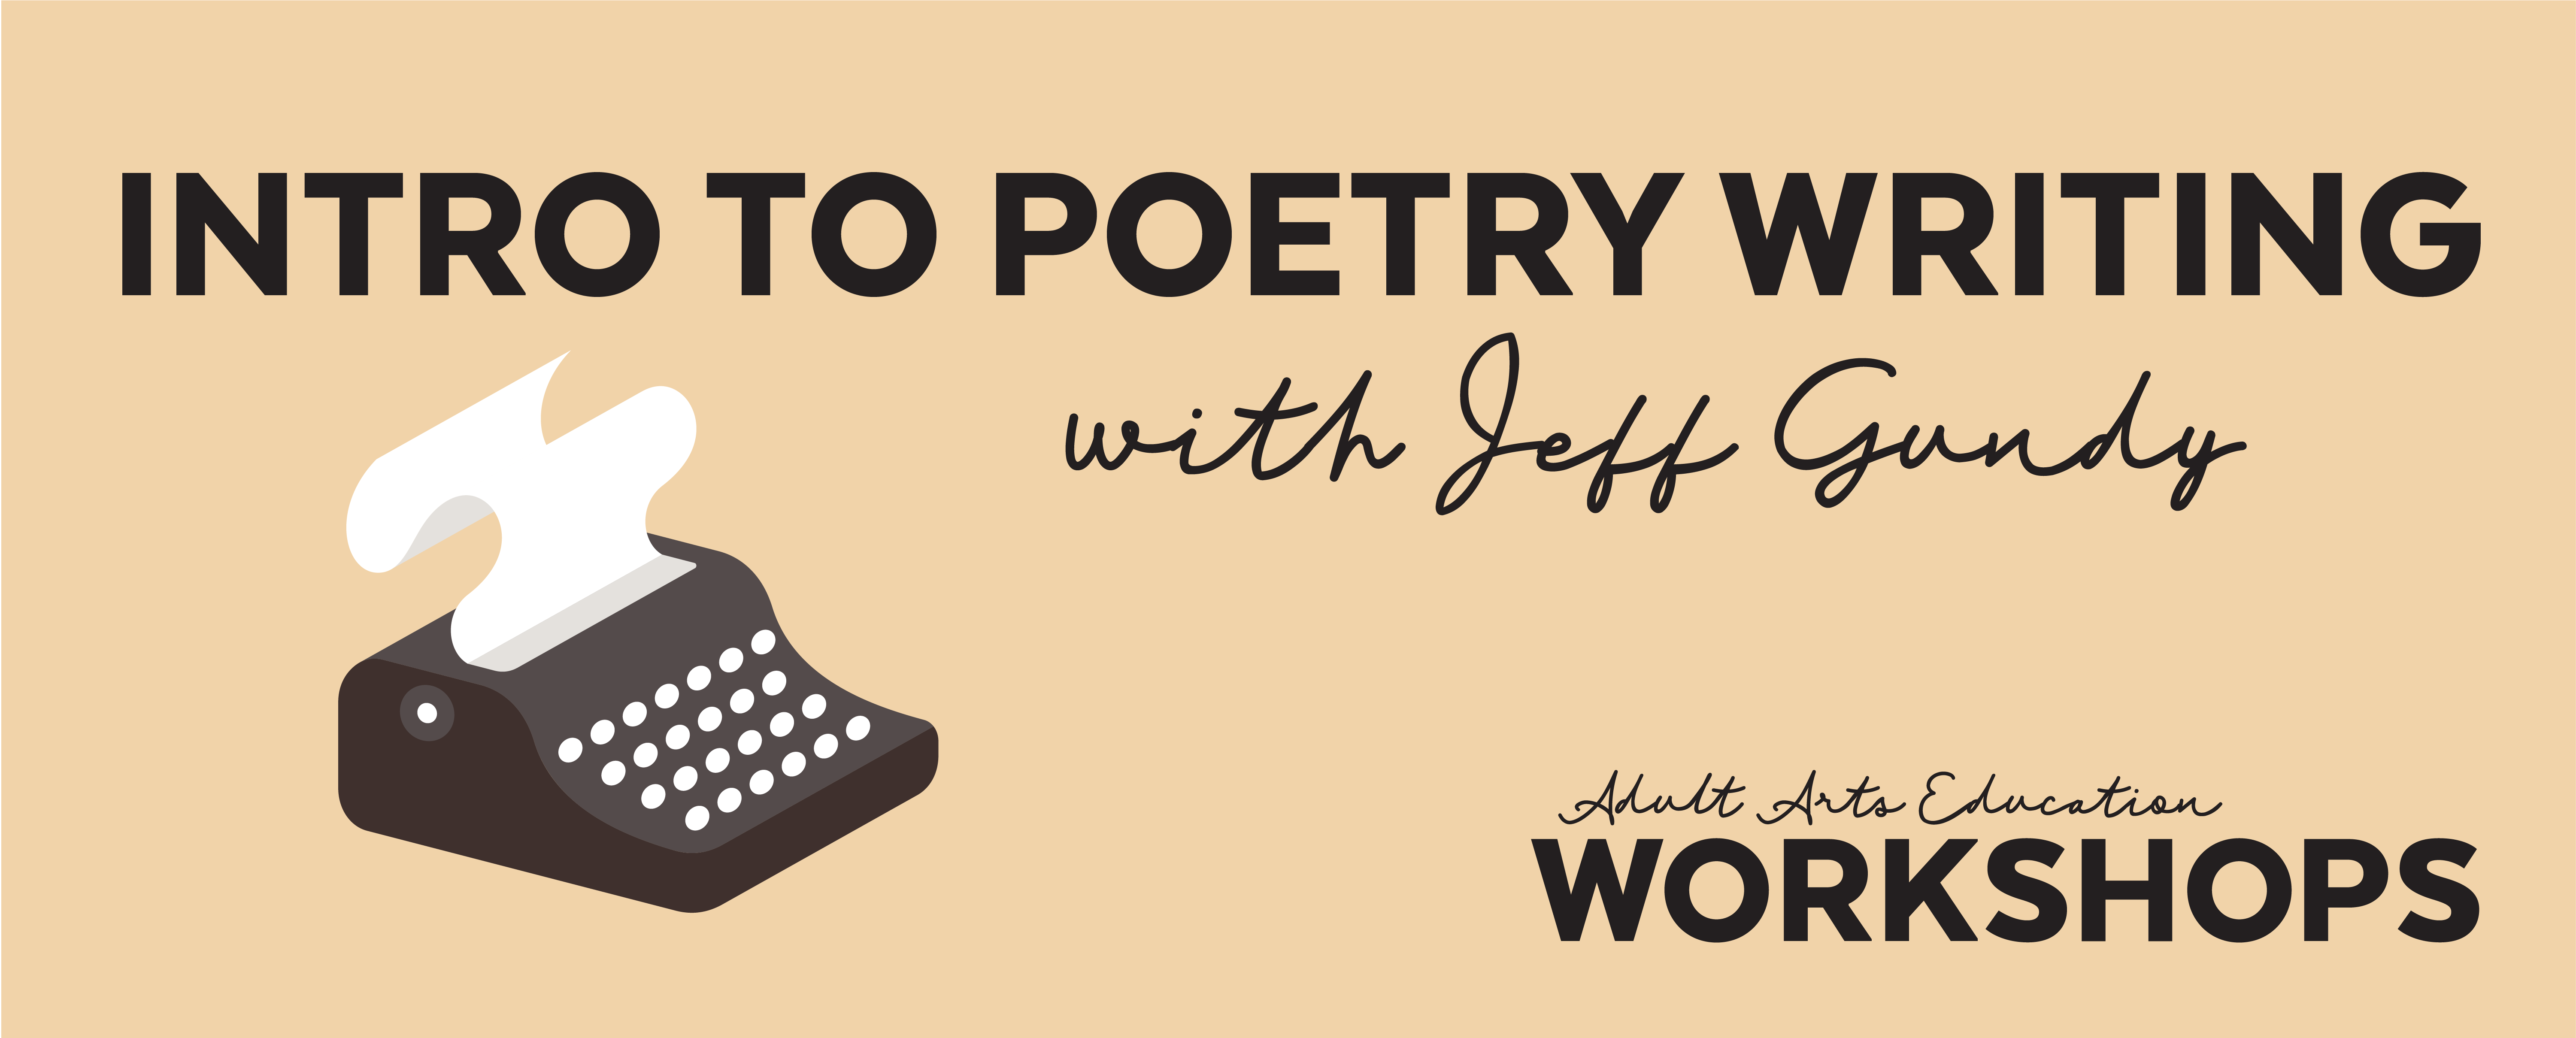 Intro to Poetry Writing with Jeff Gundy